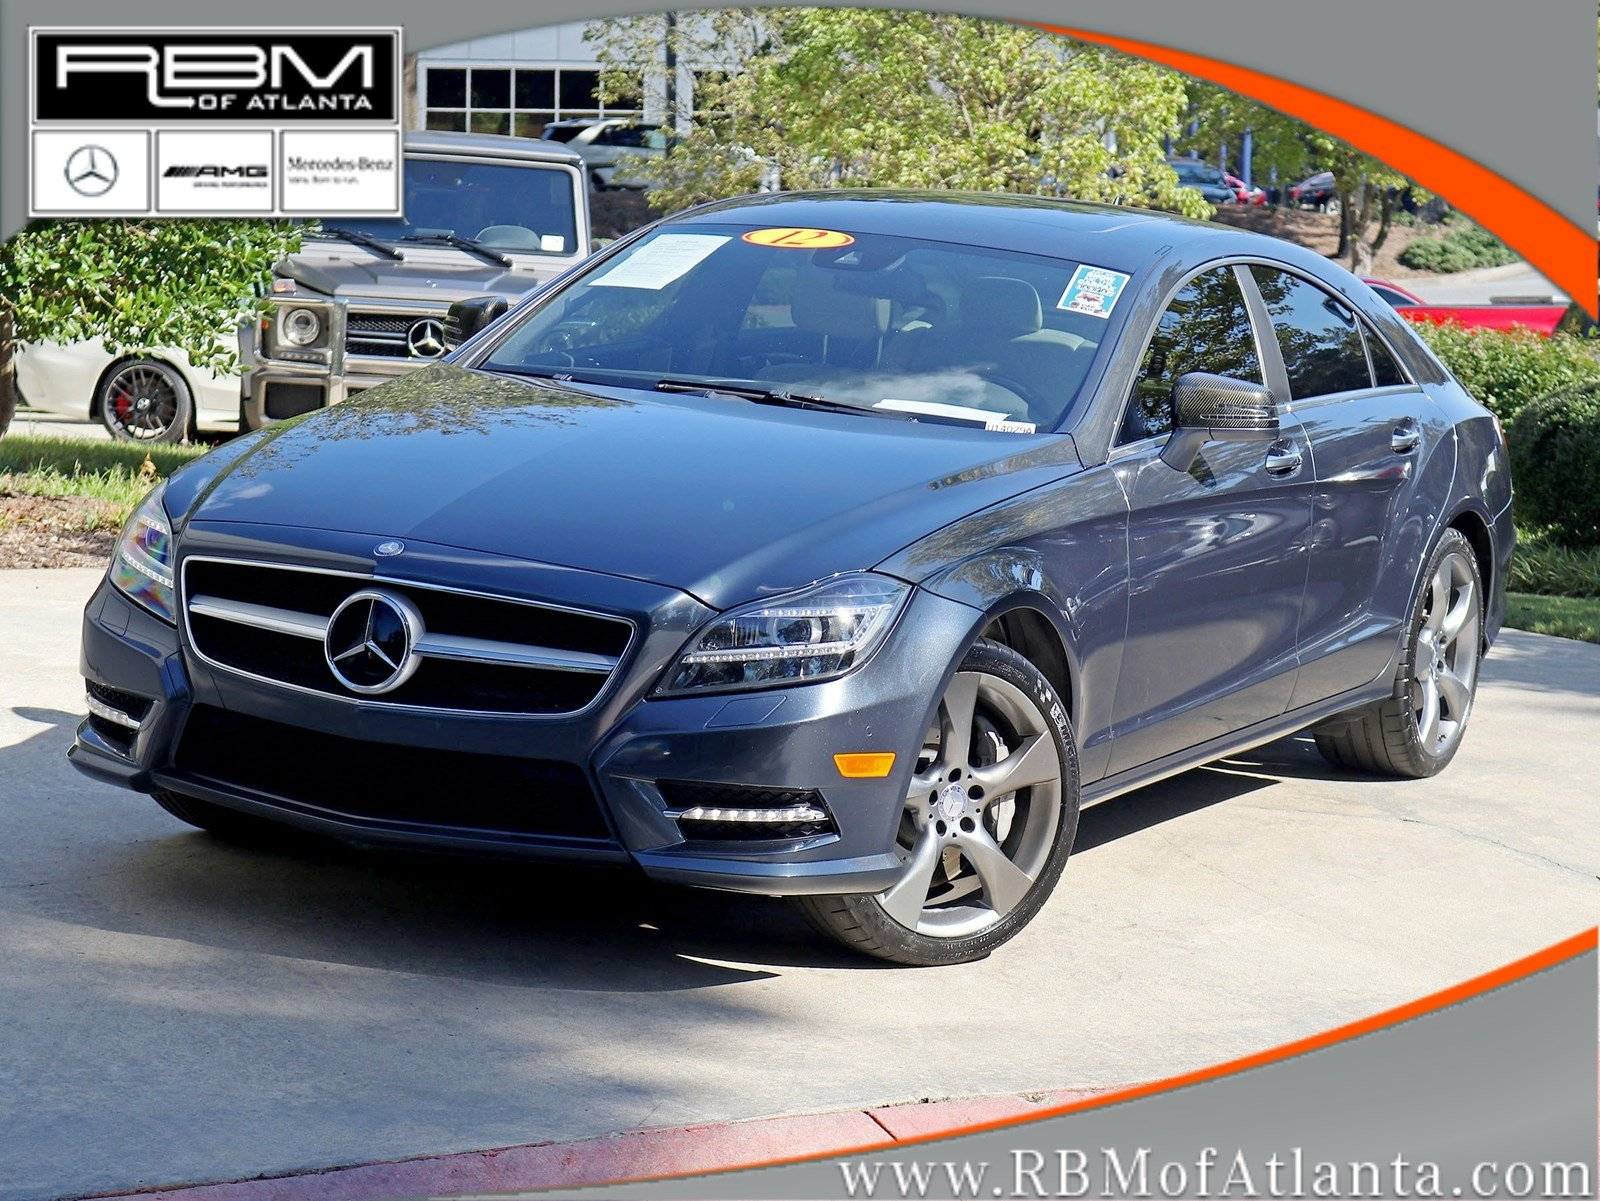 Pre Owned 2012 Mercedes Benz CLS CLS 550 4MATIC® Coupe